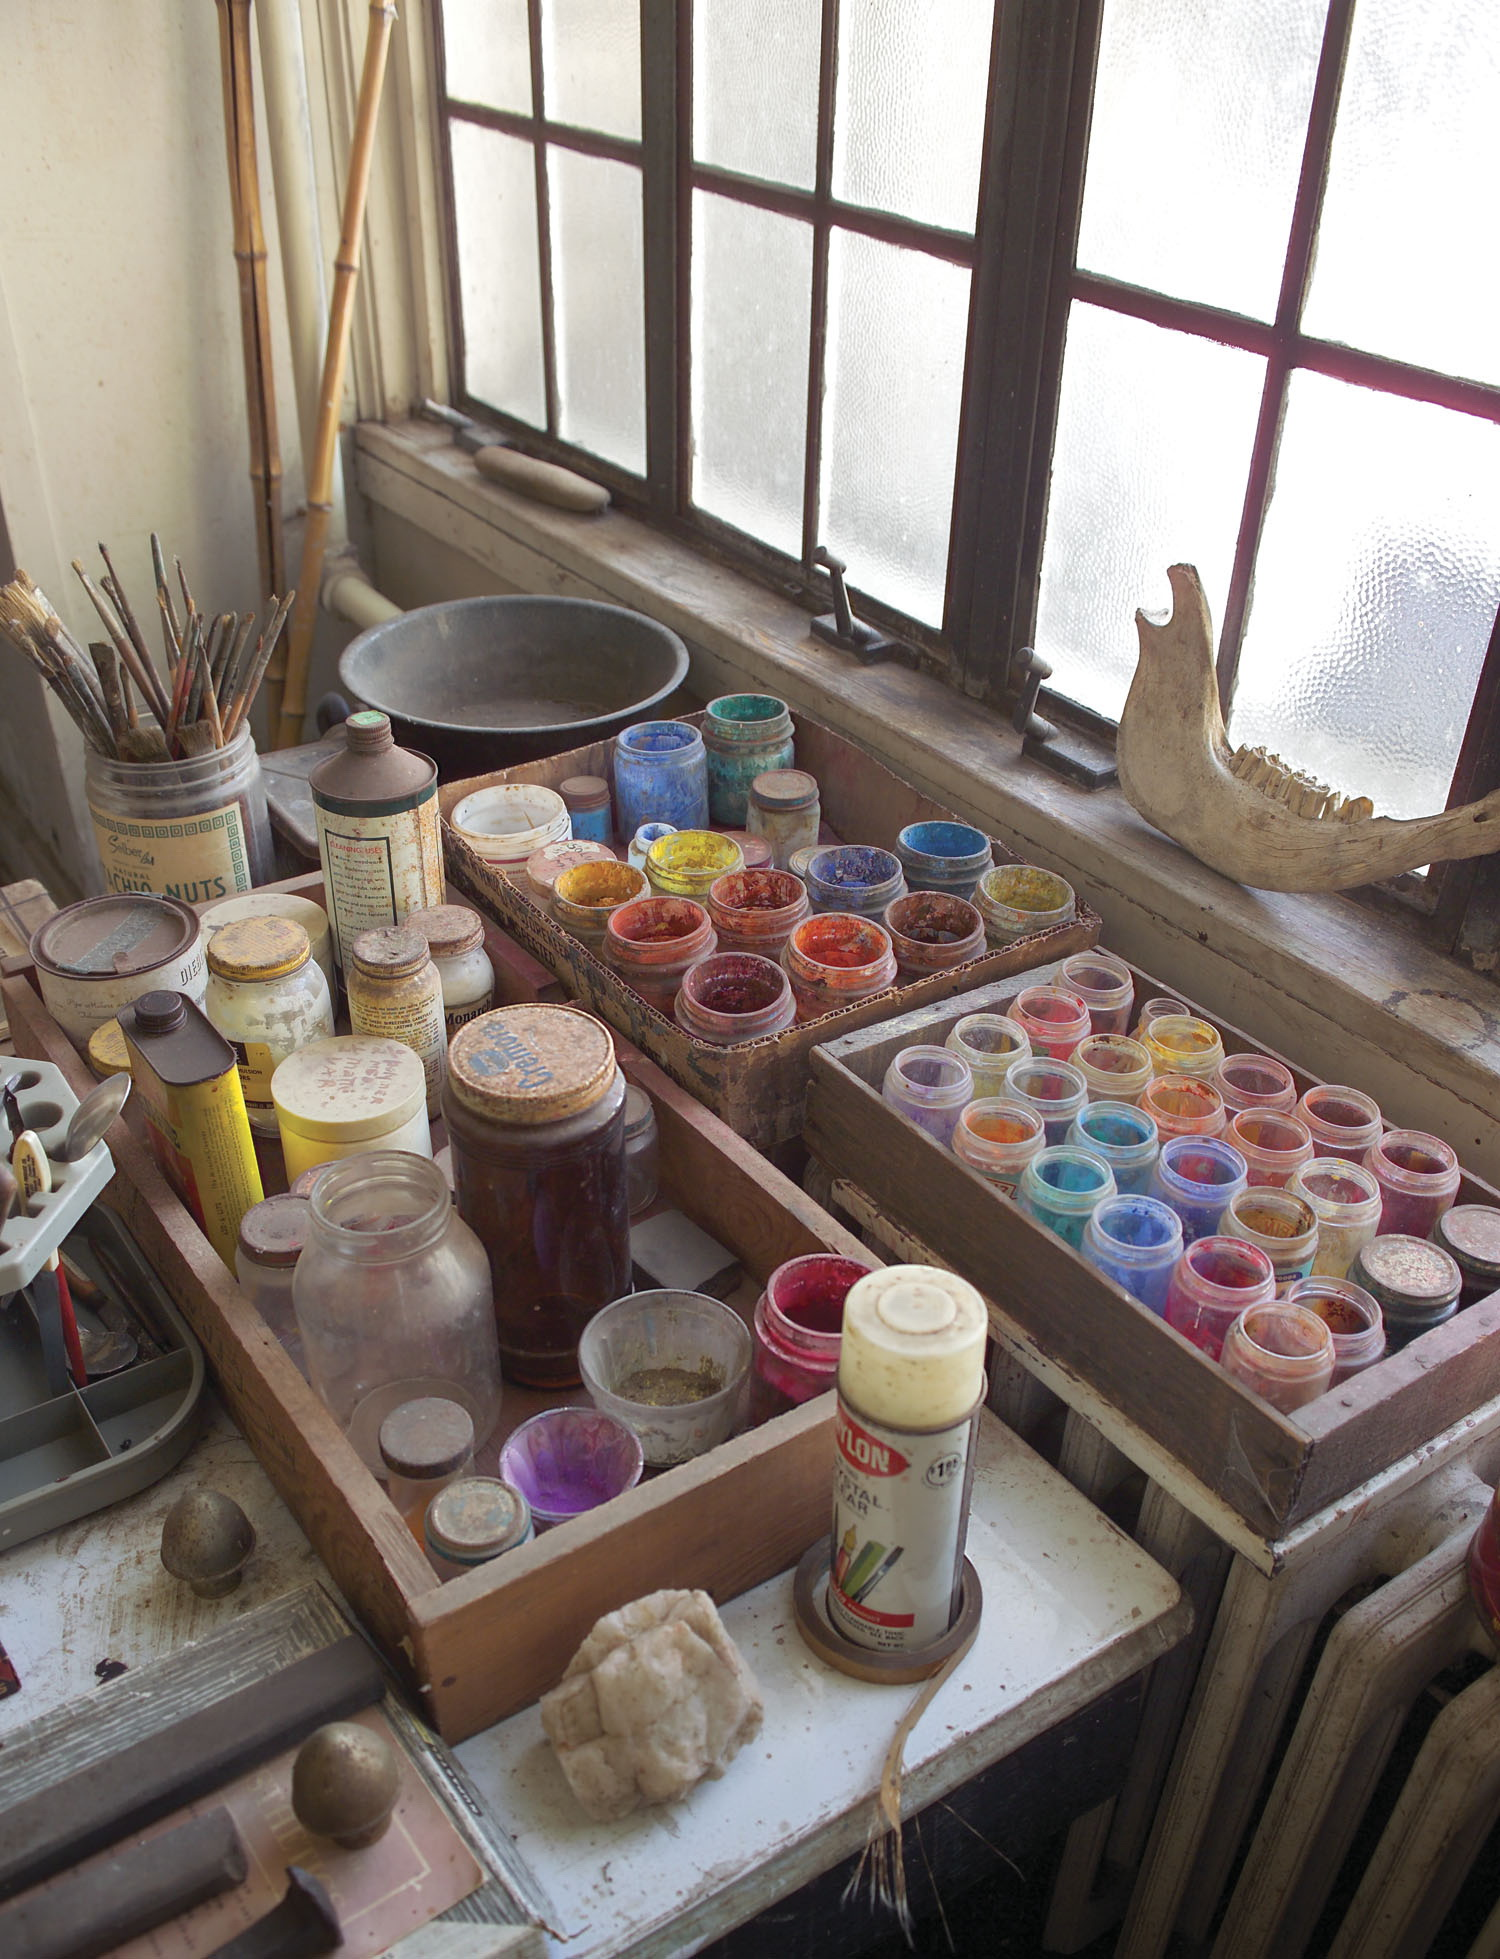 paints sit on a table next to the window in Benton's studio